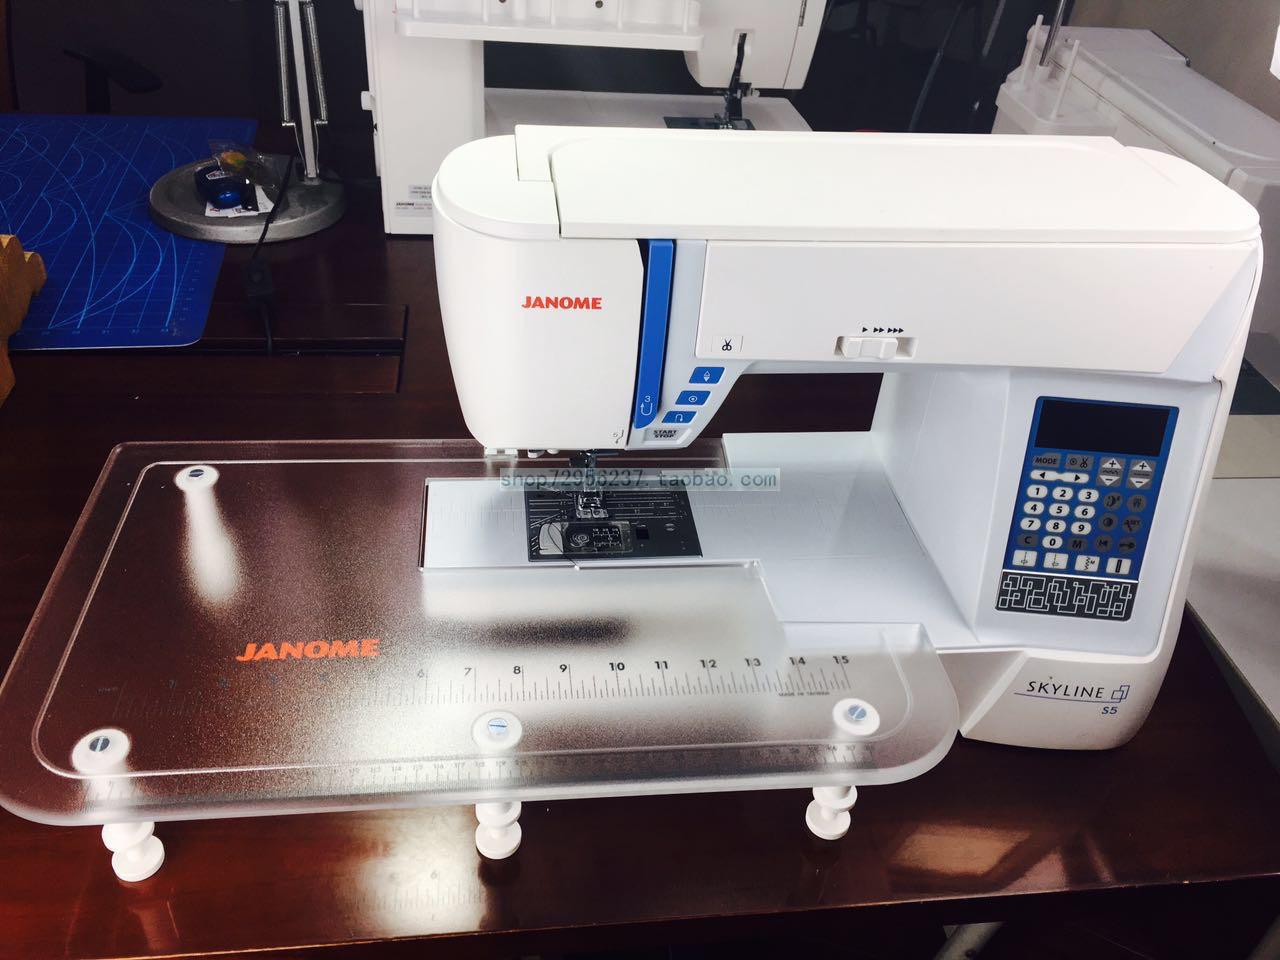 NEW JANOME Sewing Machine Extension Table FOR JANOME S5 Extension Sewing Machine Size 68cmx31cm